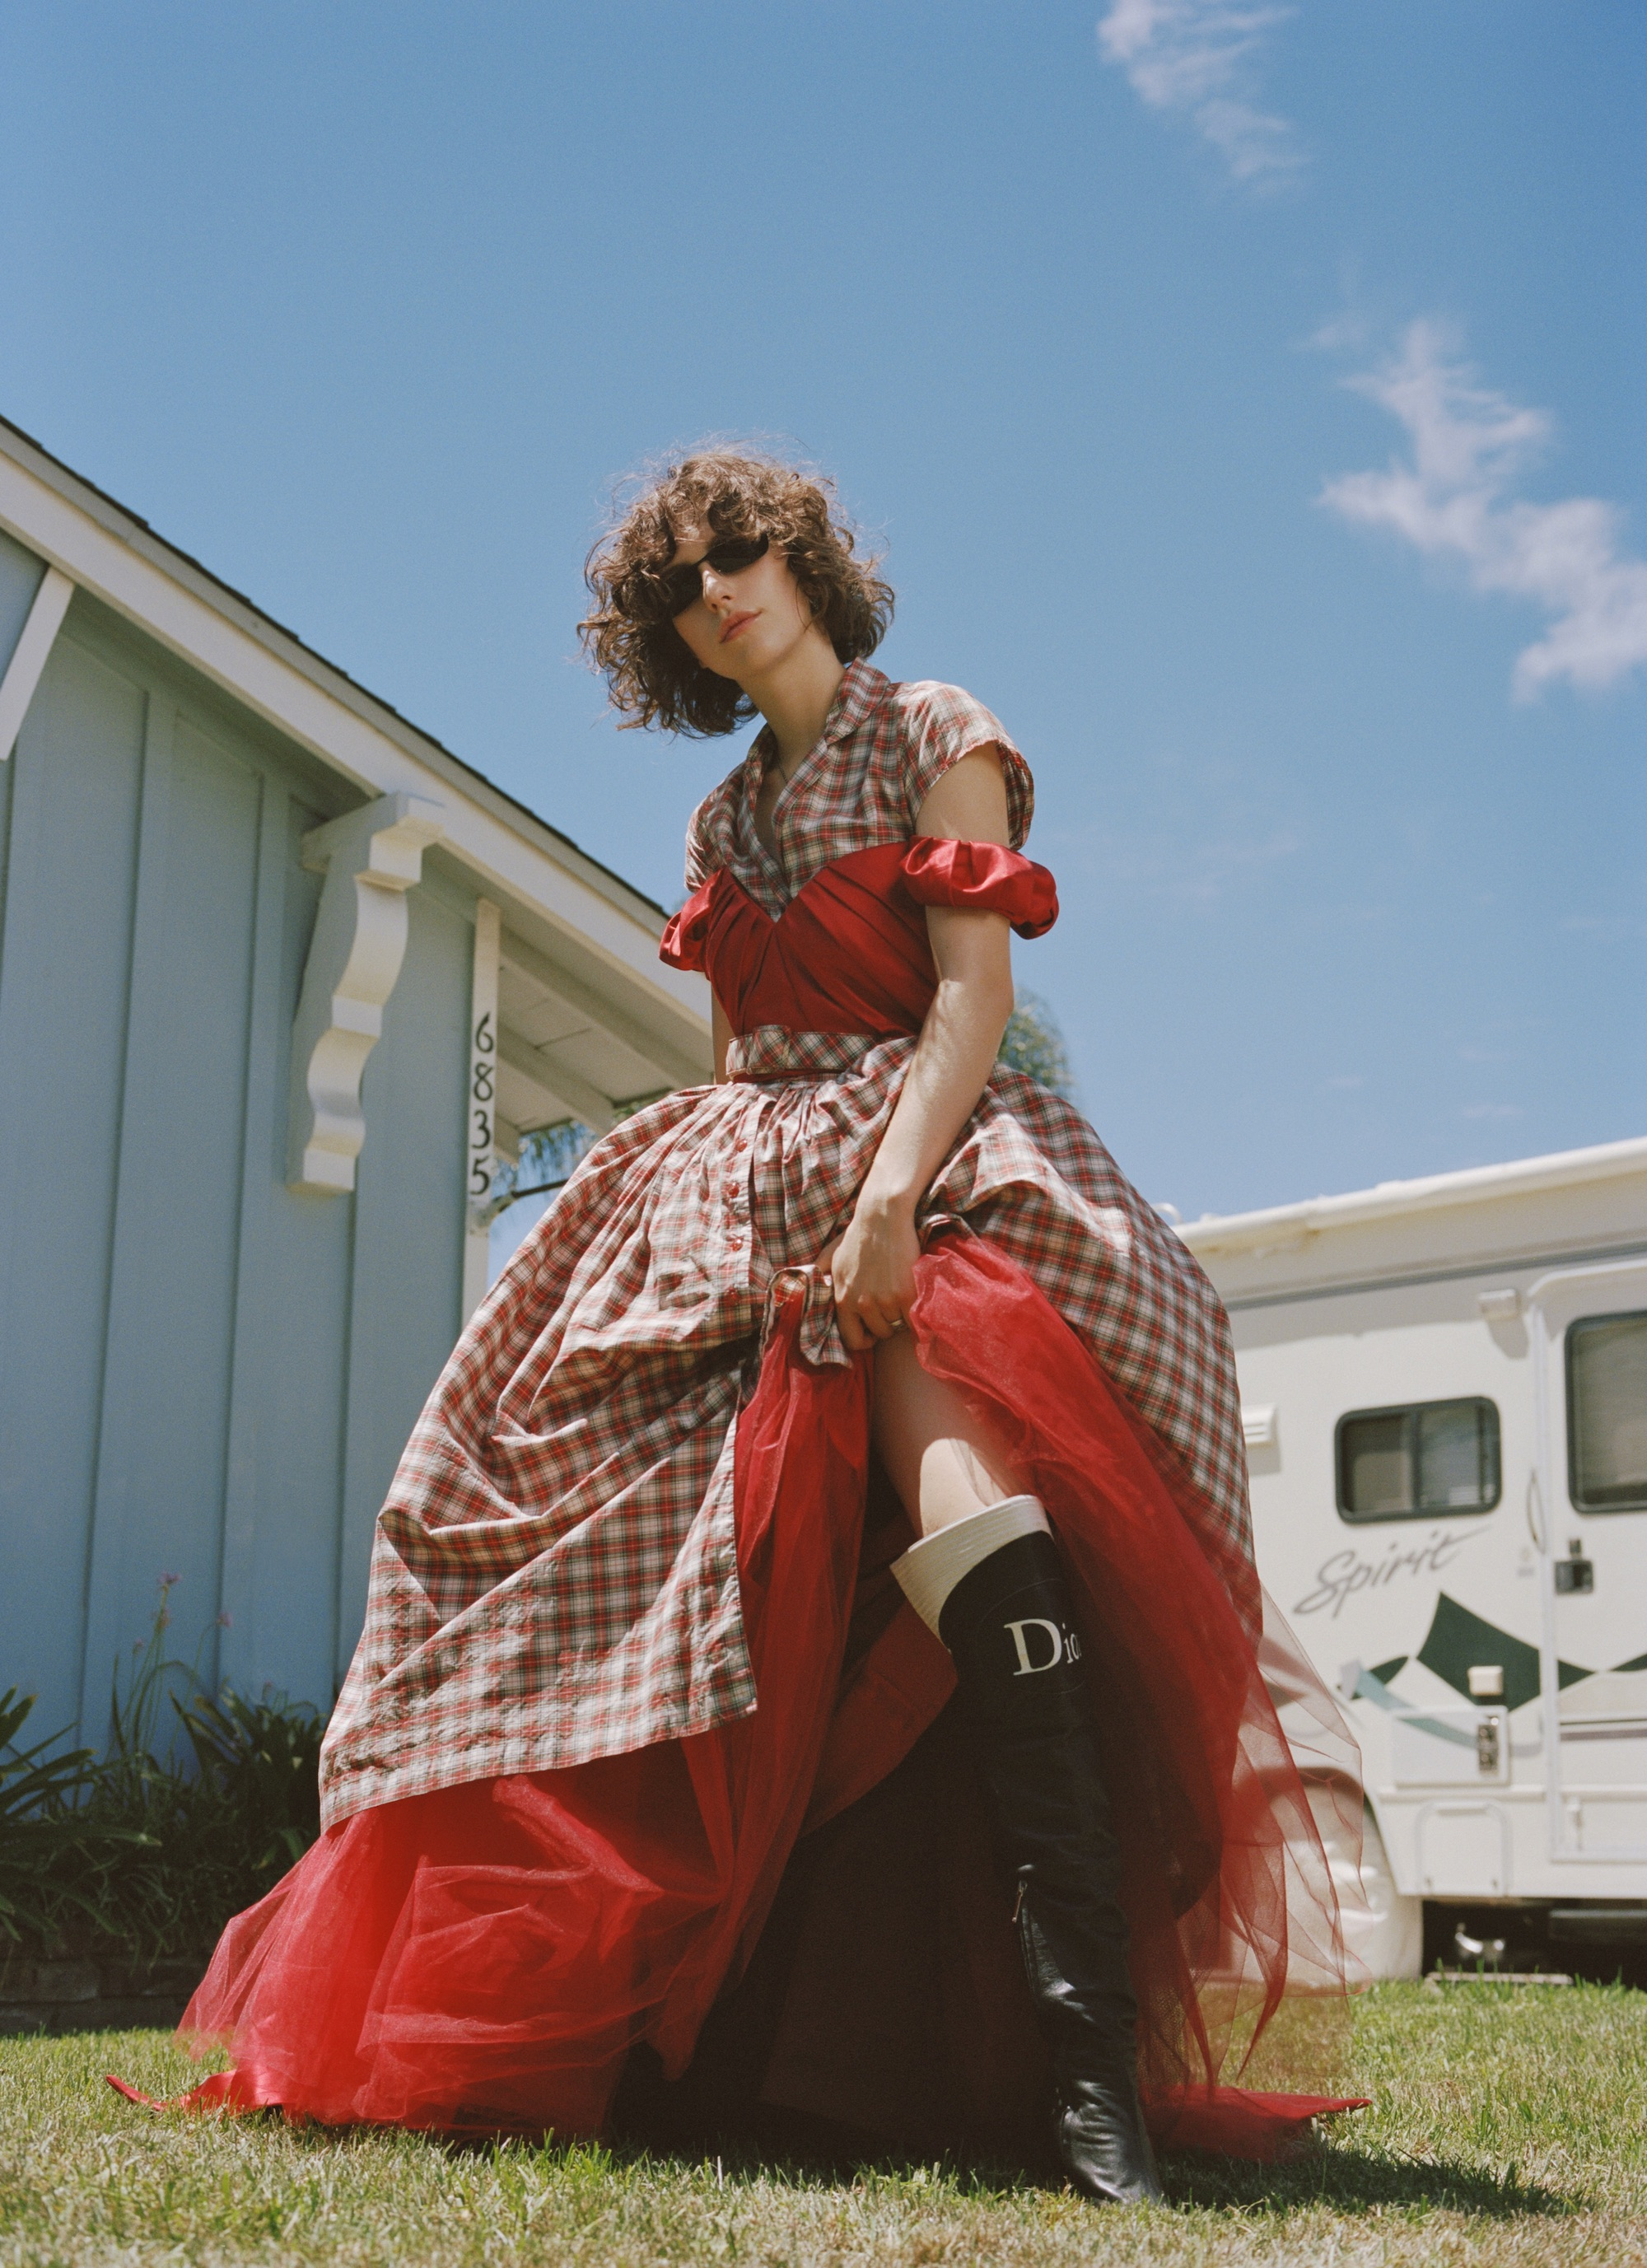 King Princess for the Autumn 19 issue of Wonderland red dress